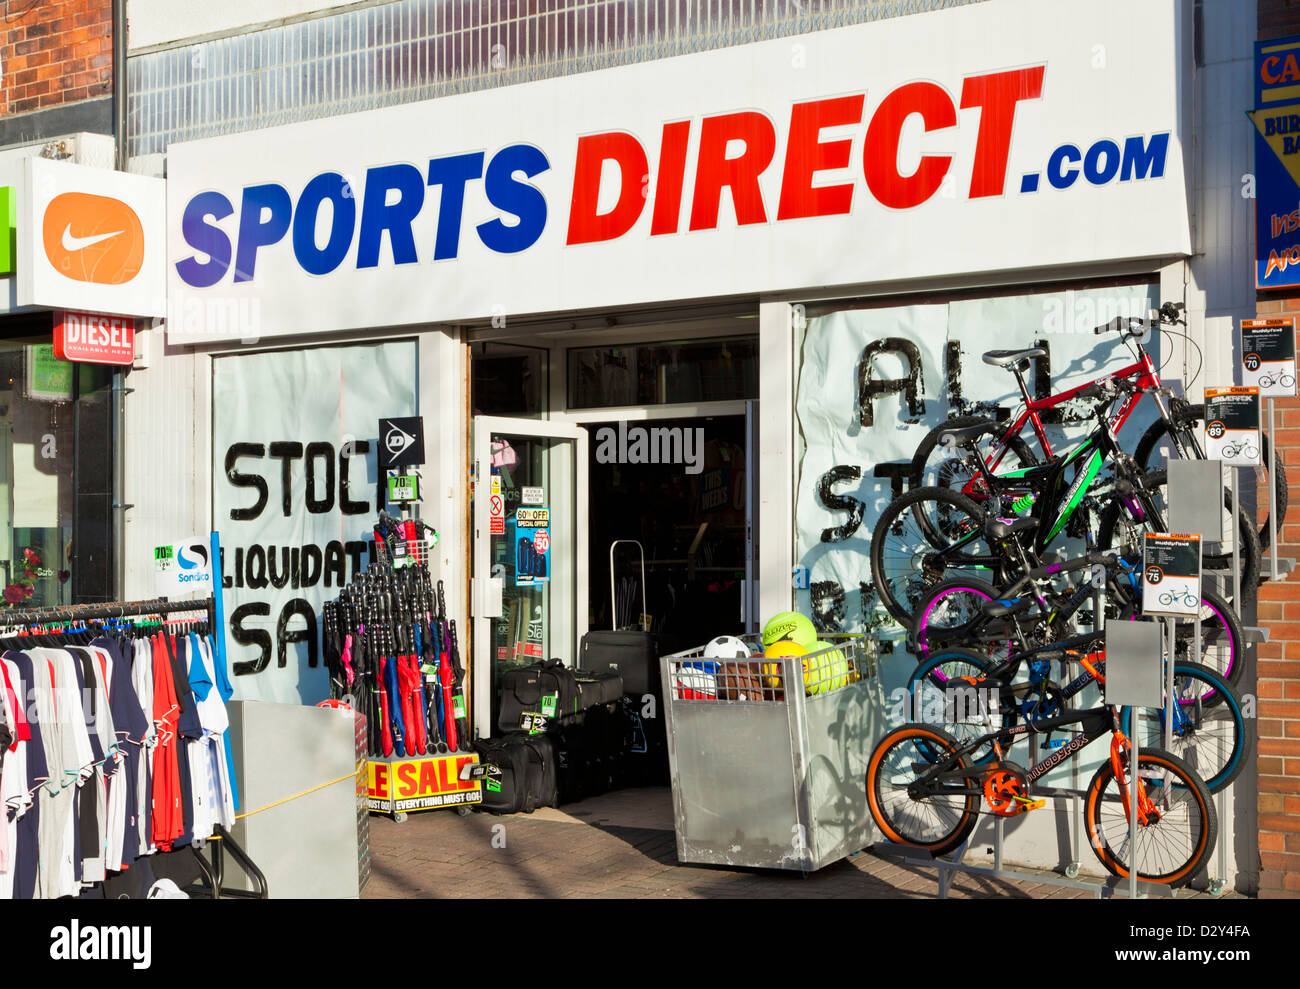 Sports Direct shop front - Stock Image